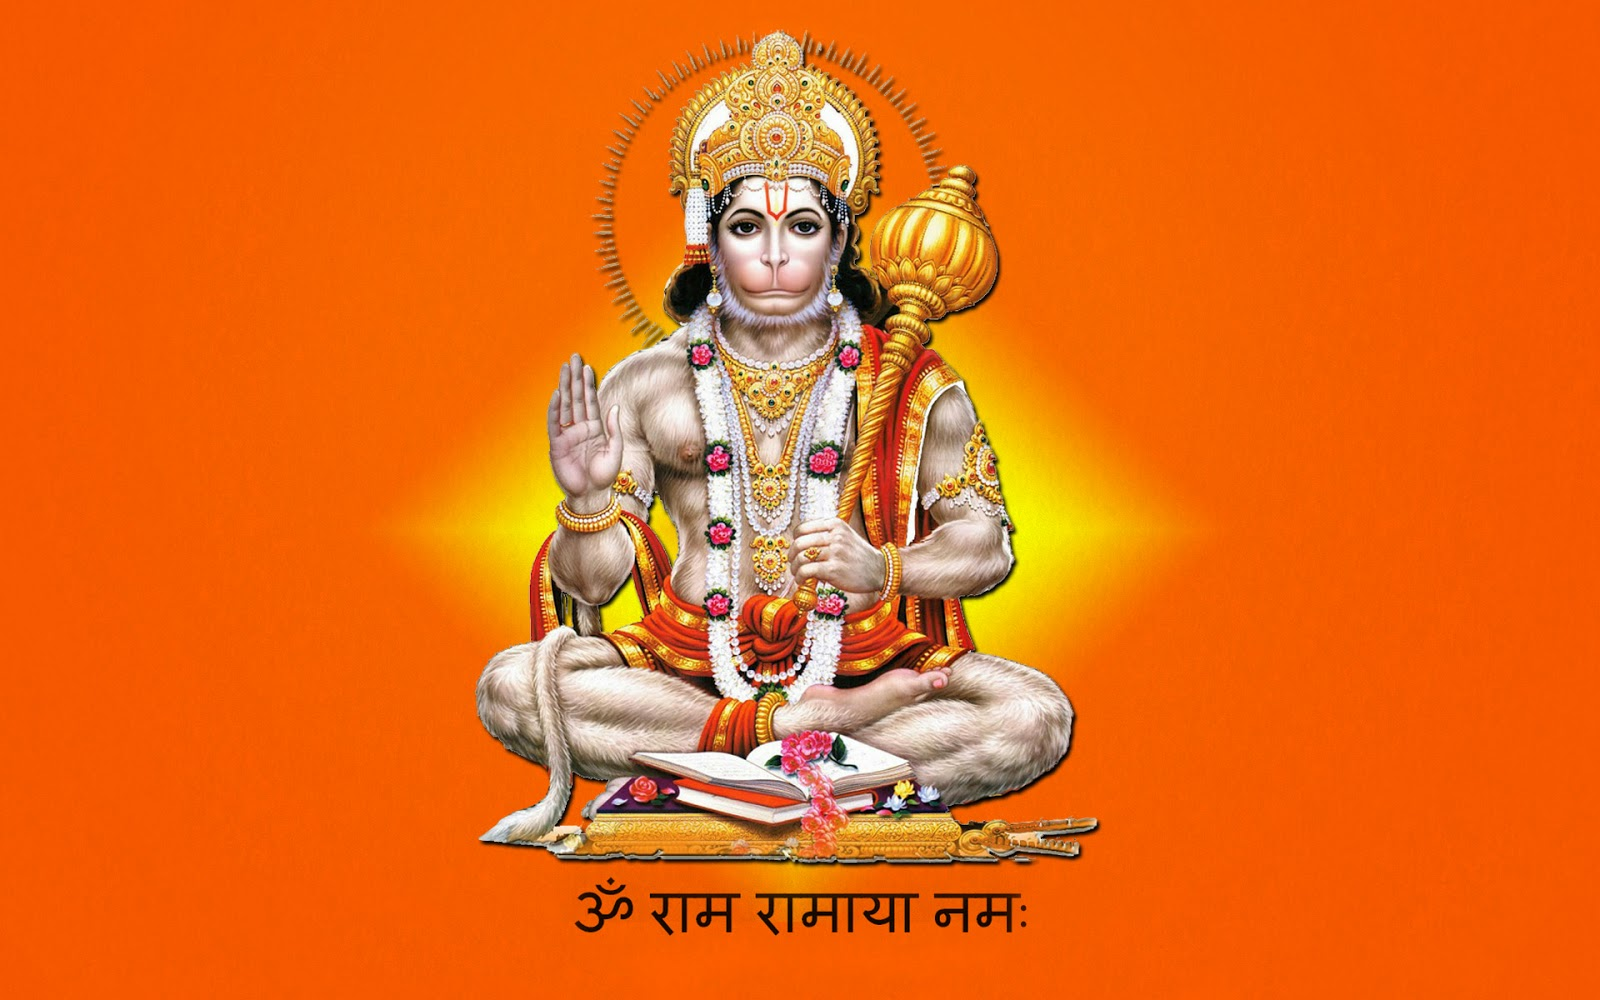 Bajrang Bali high quality hd photos